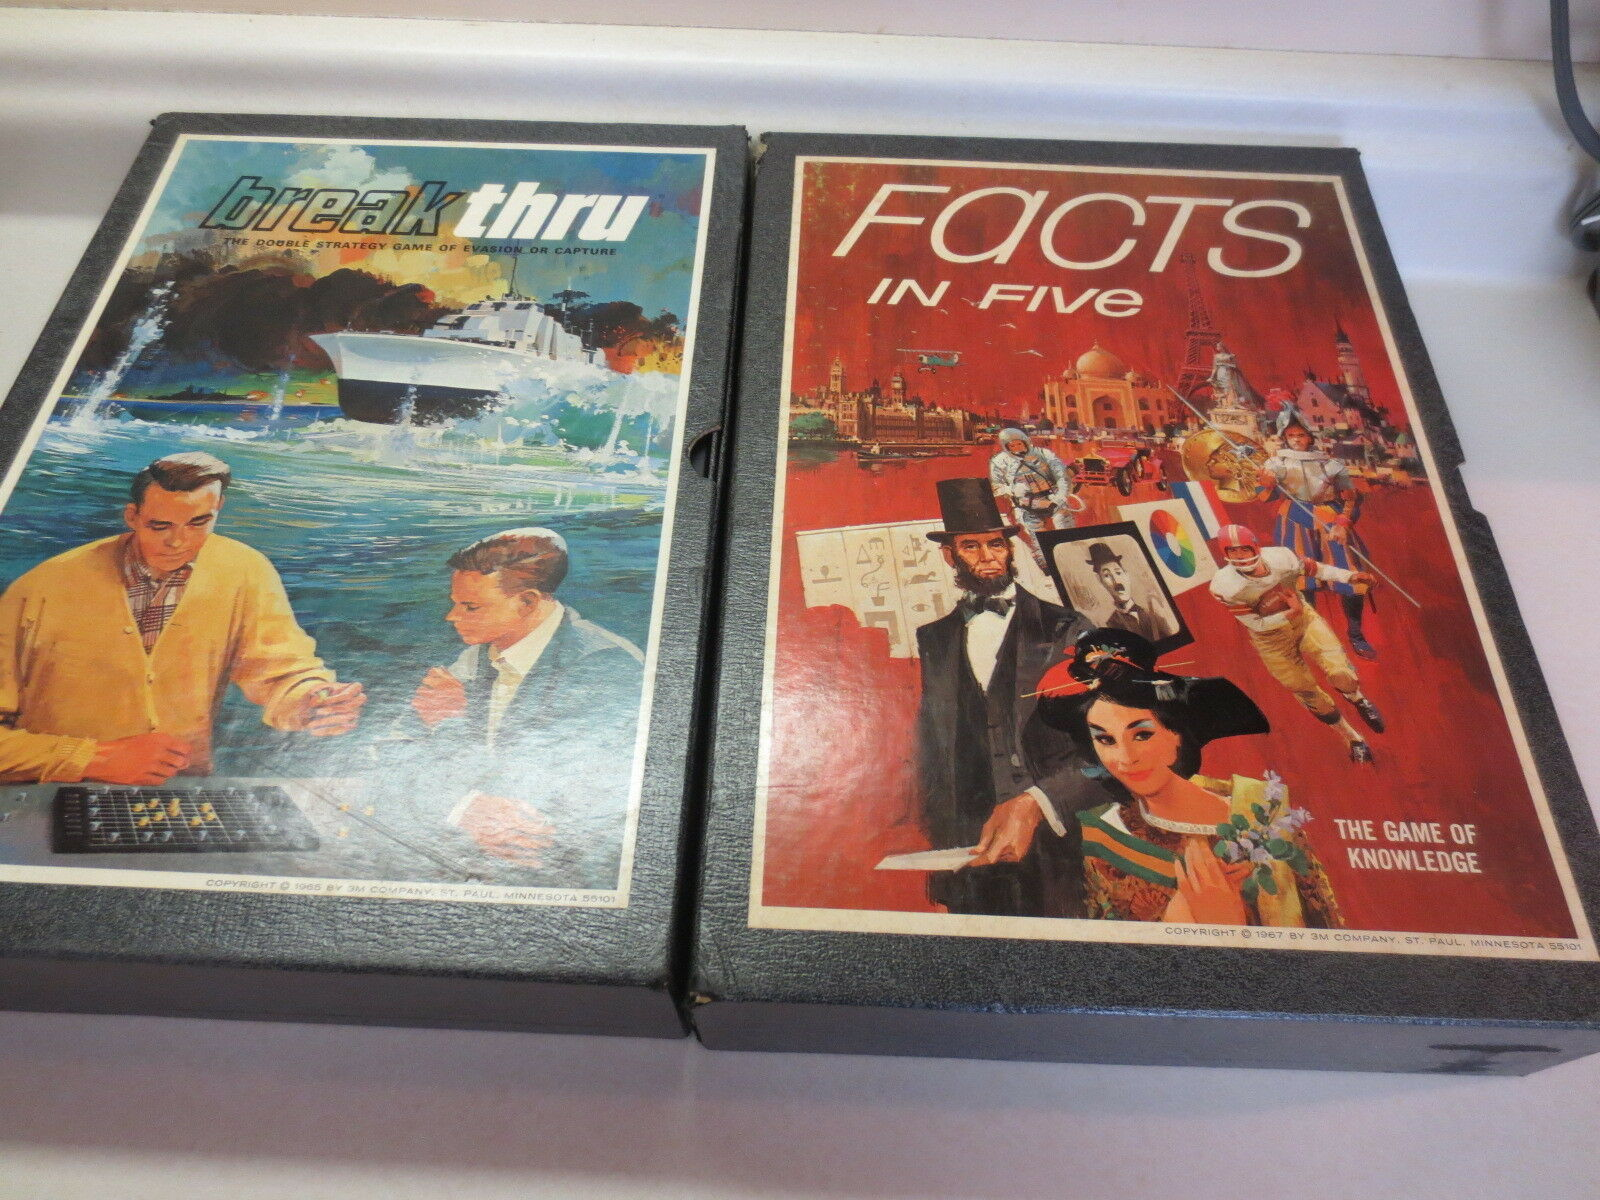 Lot of 2 vintage Bookcase Board Games Facts in Five and Breakthru